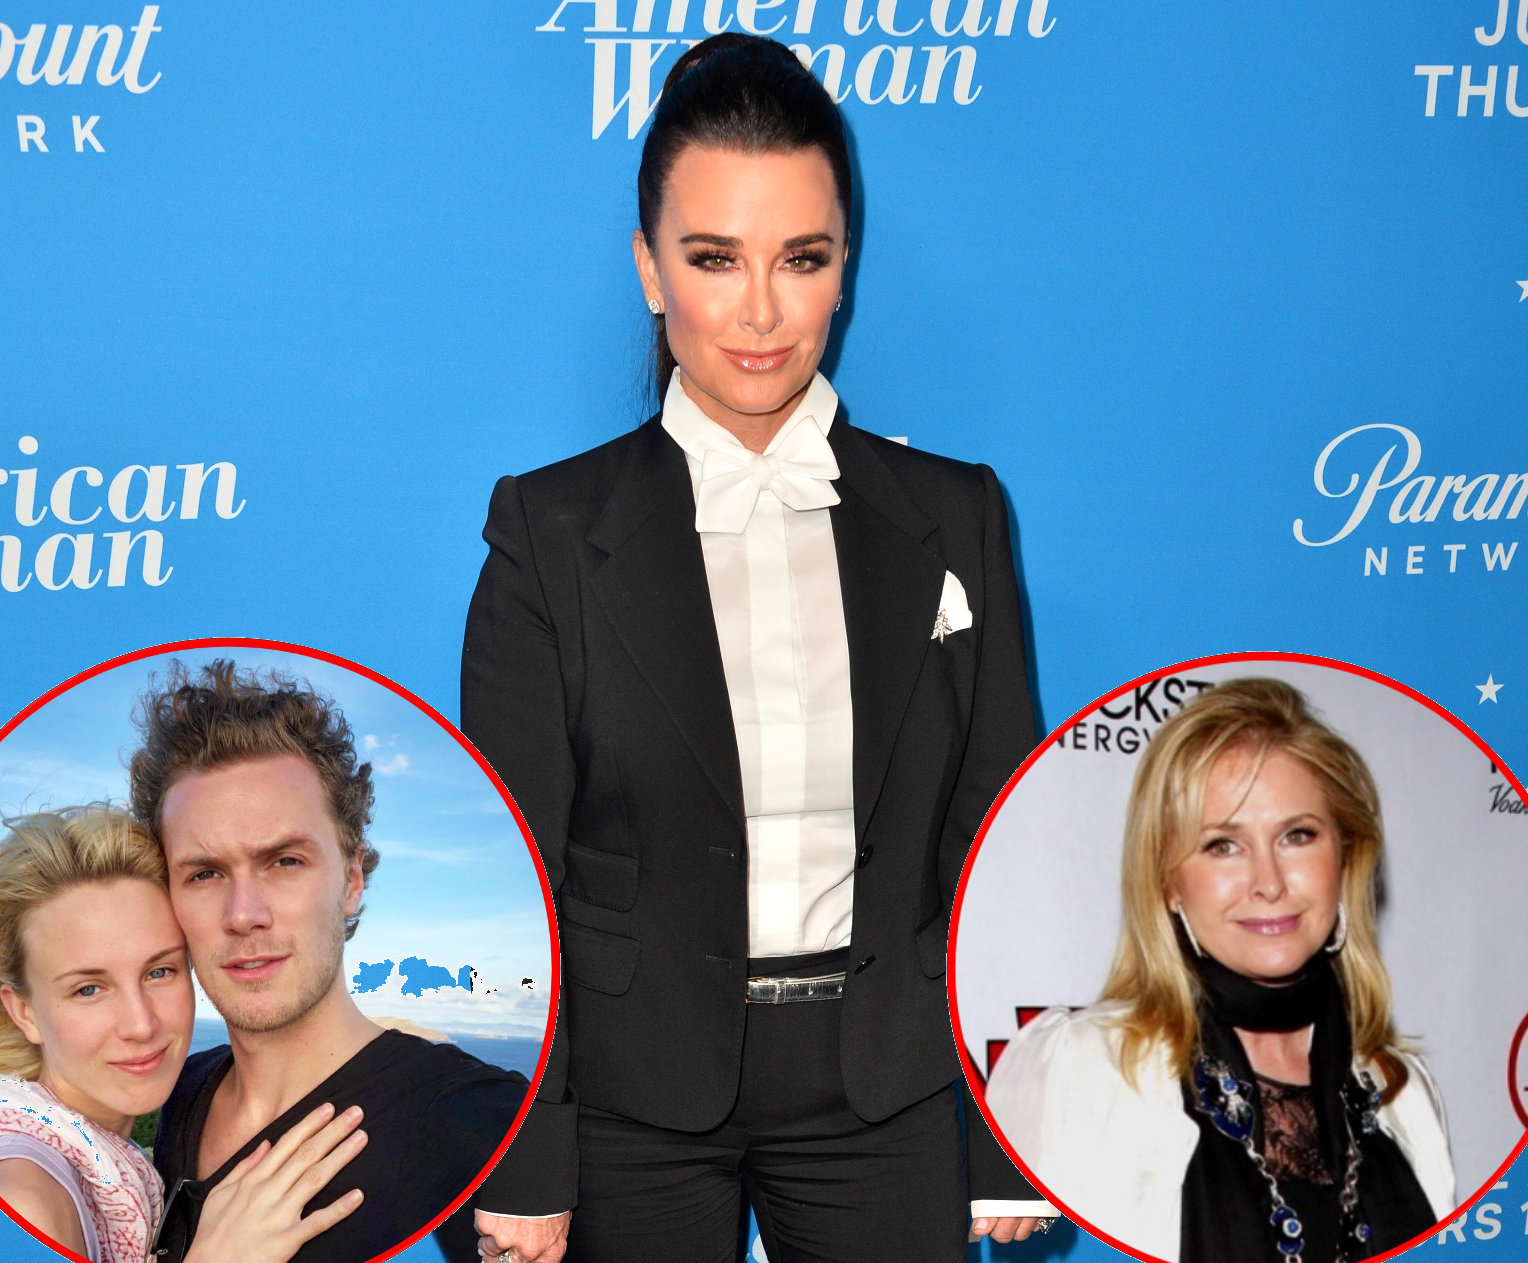 RHOBH Kyle Richards Misses Barron Hilton Wedding Amid Kathy Hilton Feud